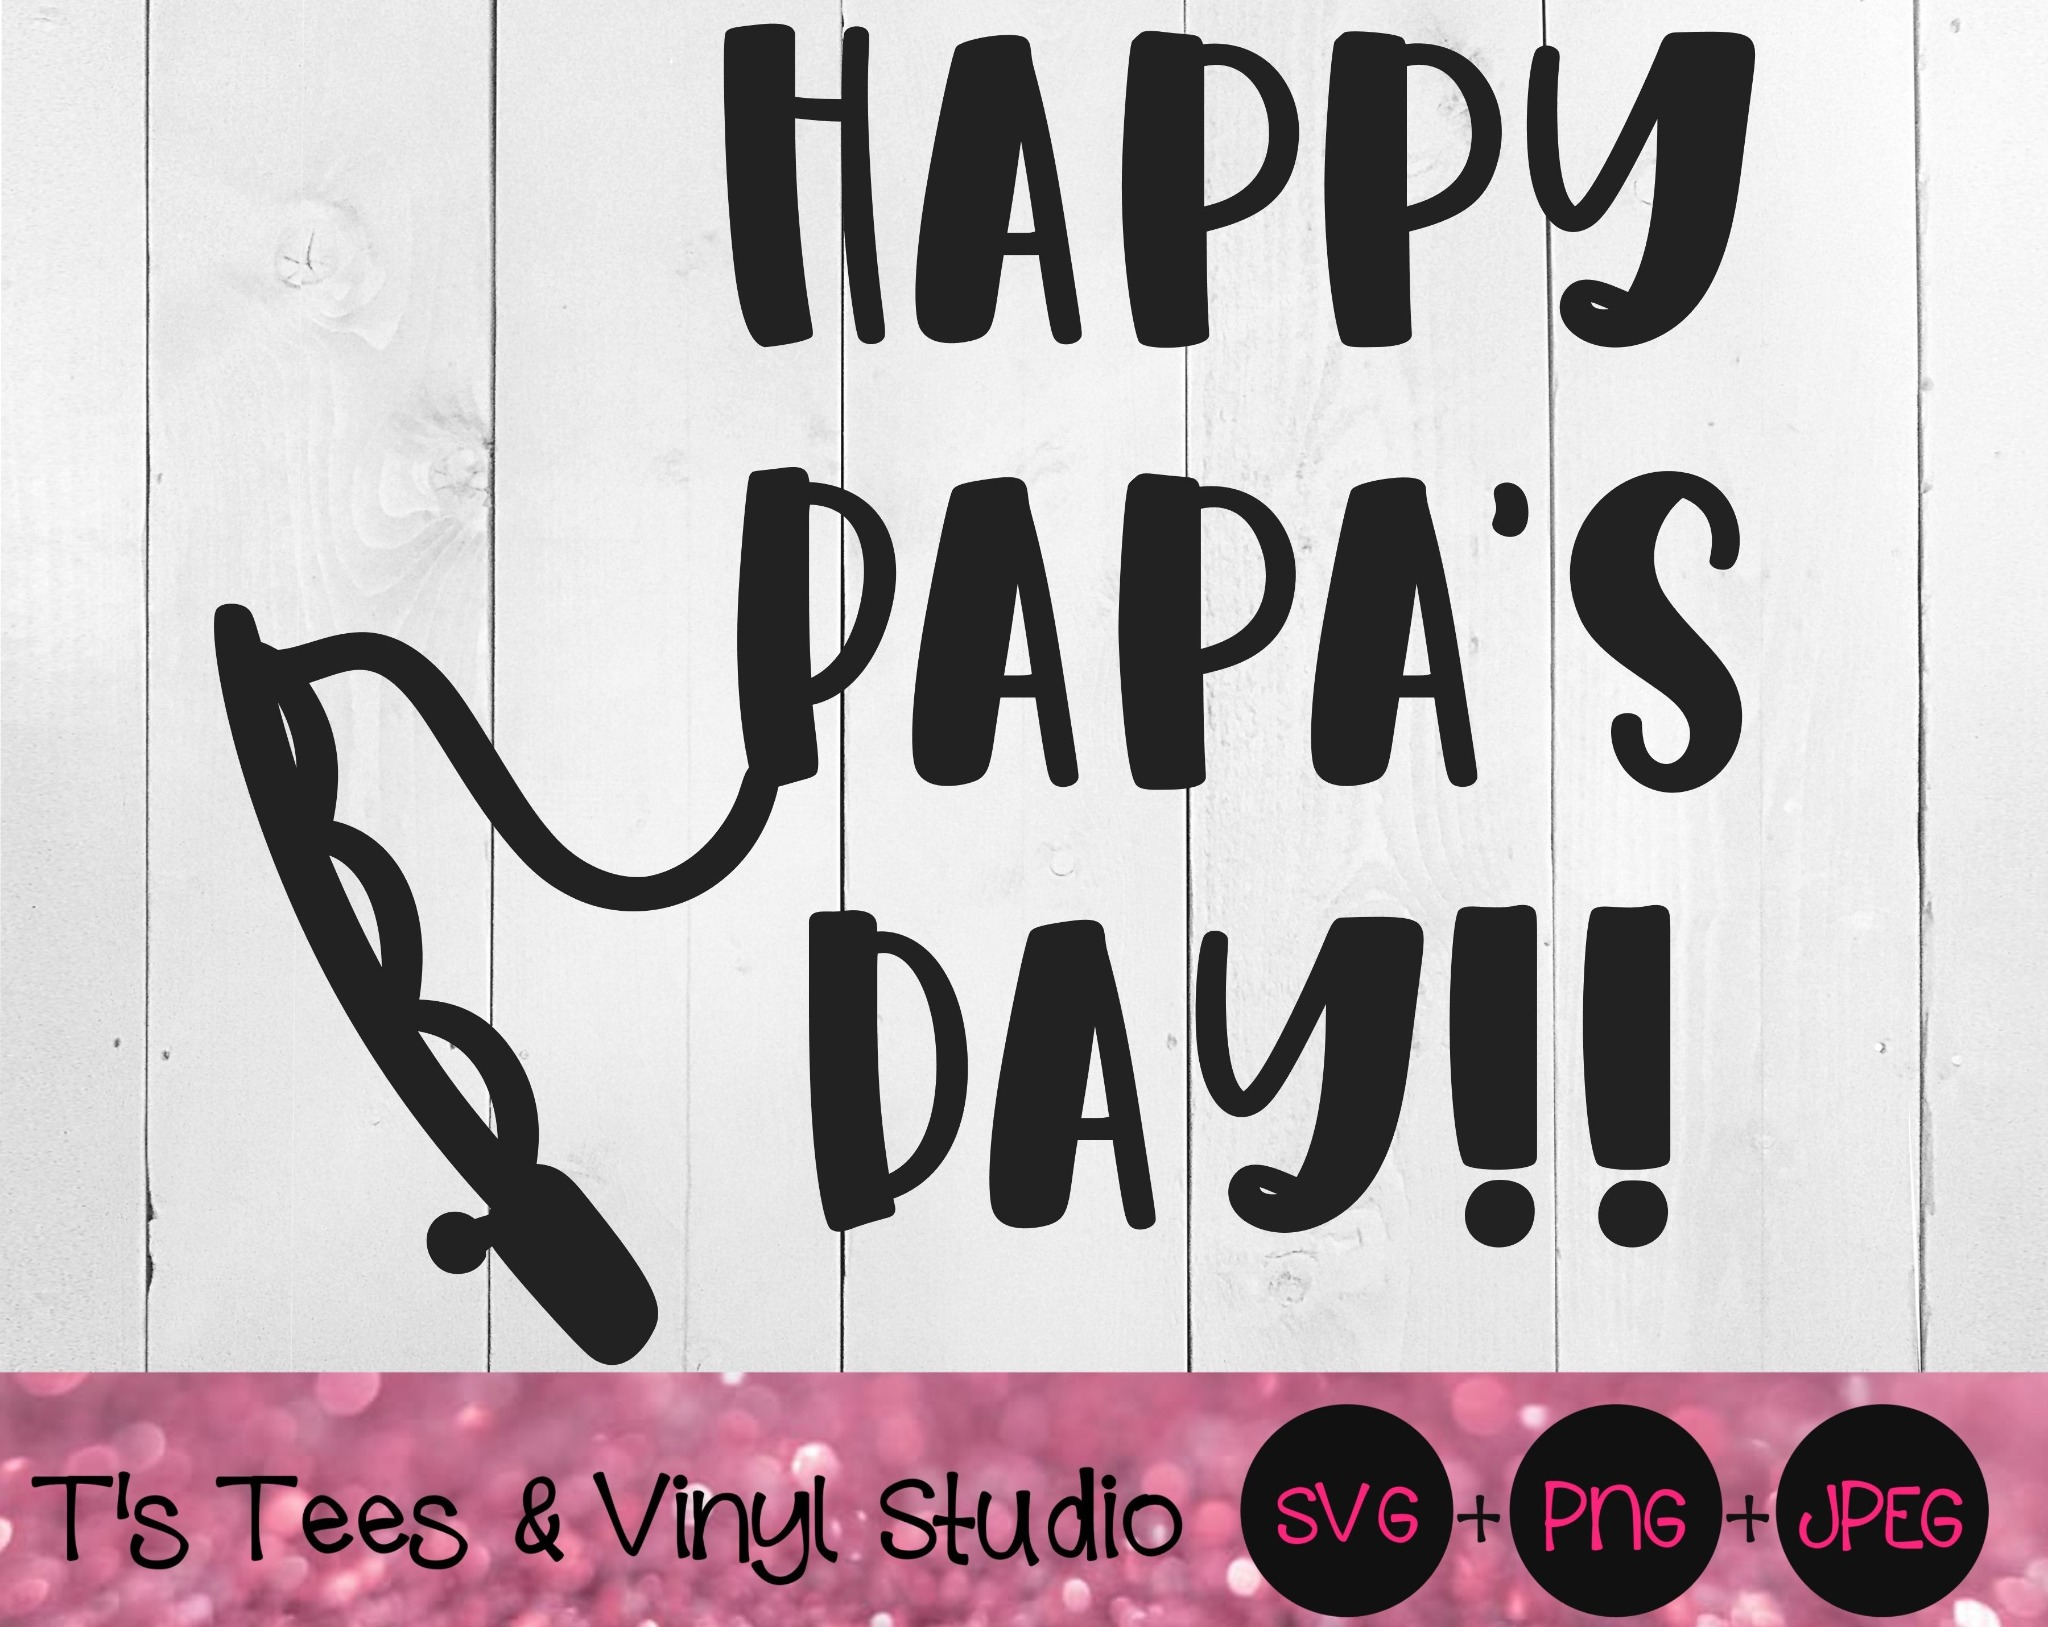 Happy Papa's Day Svg, Happy Father's Day Svg, Papa Svg, Dad Svg, Father Svg, Daddy Svg, Happy Papa's